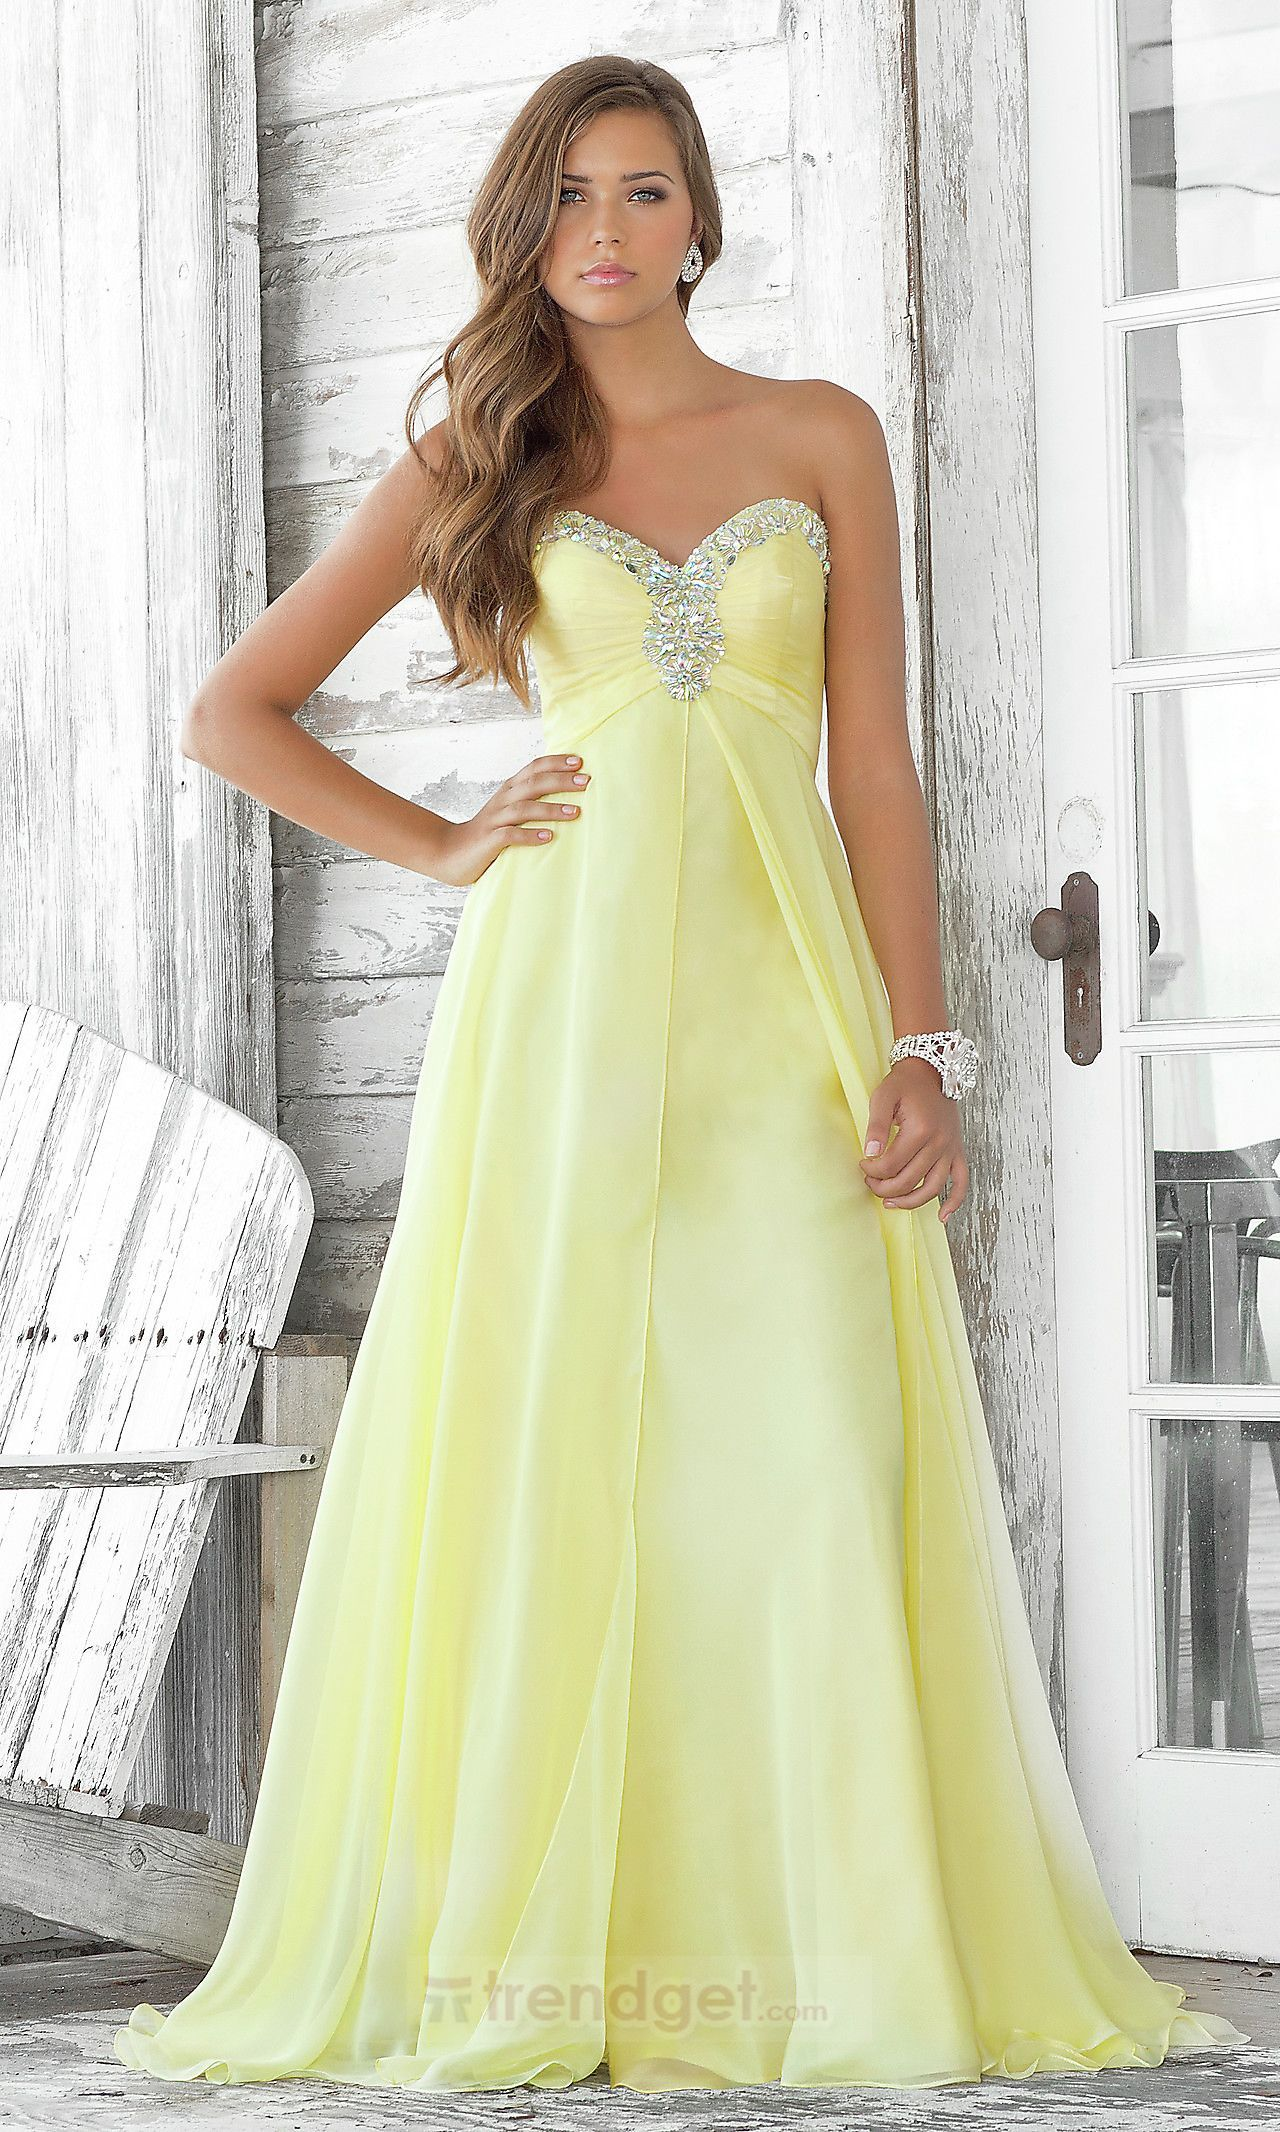 ball gowns Clearwater